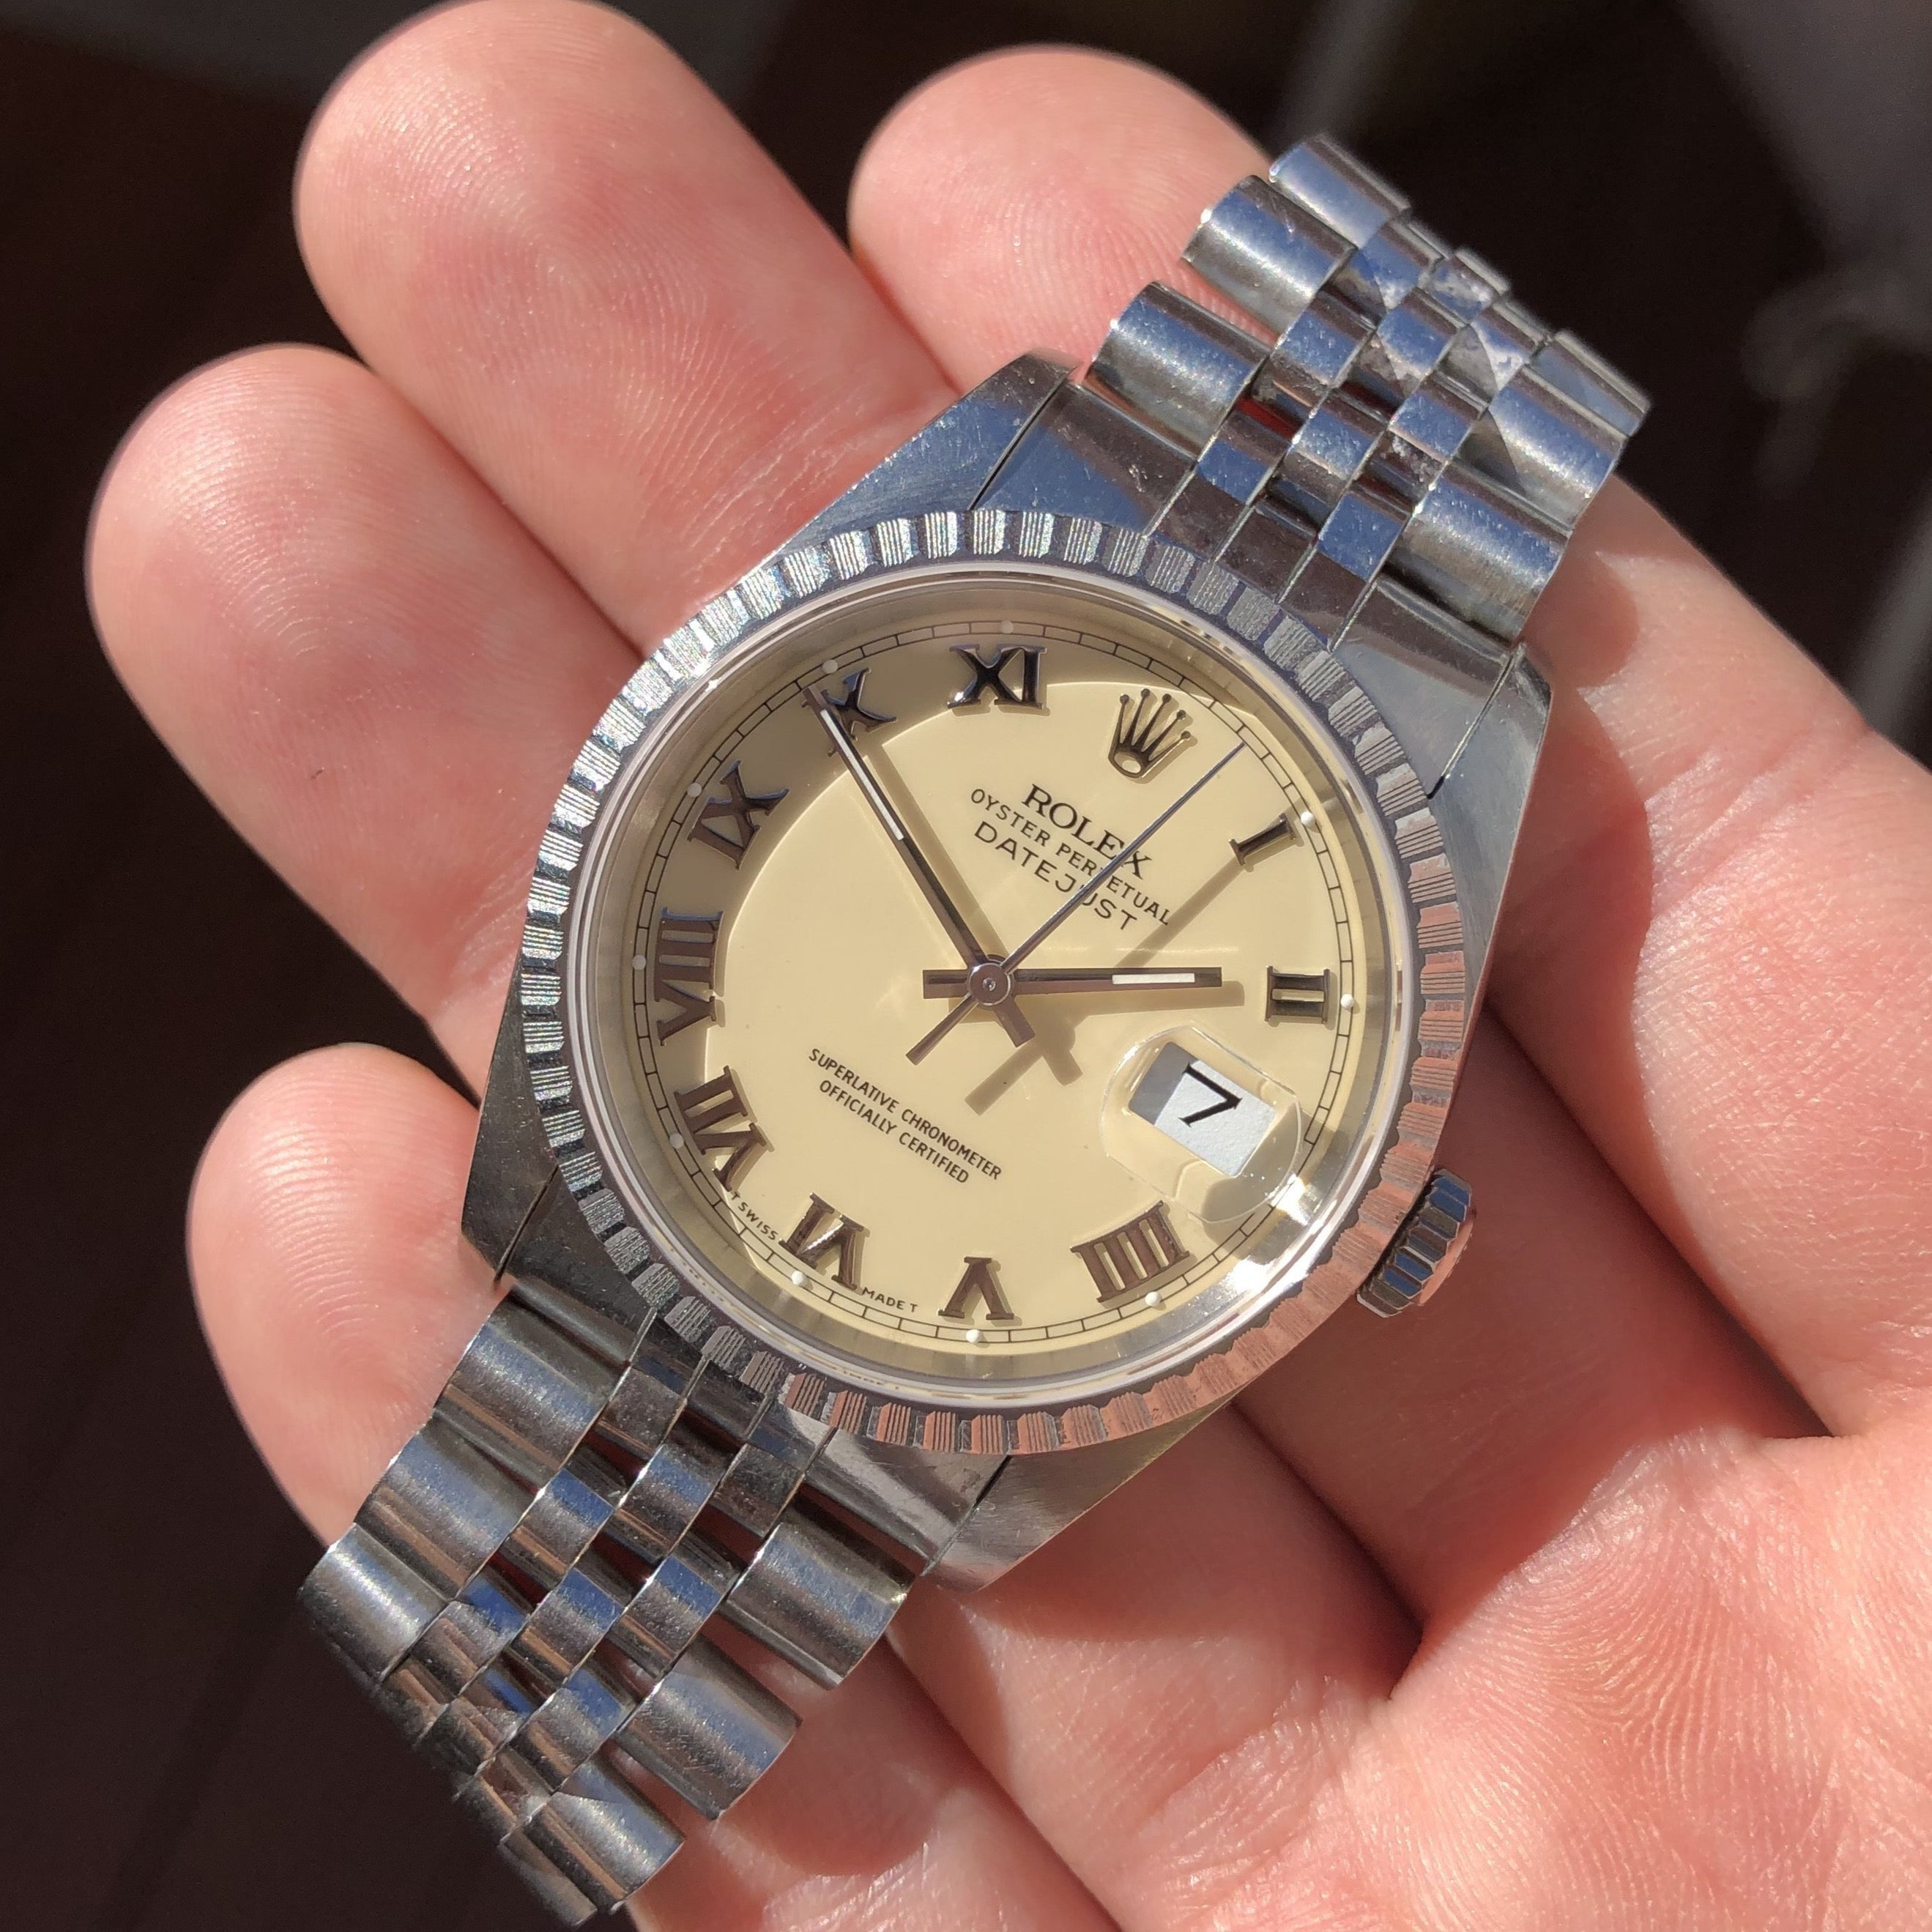 1989 Vintage Rolex Datejust 16220 Cream Jubilee Steel Engine Turned Automatic Wristwatch - Hashtag Watch Company